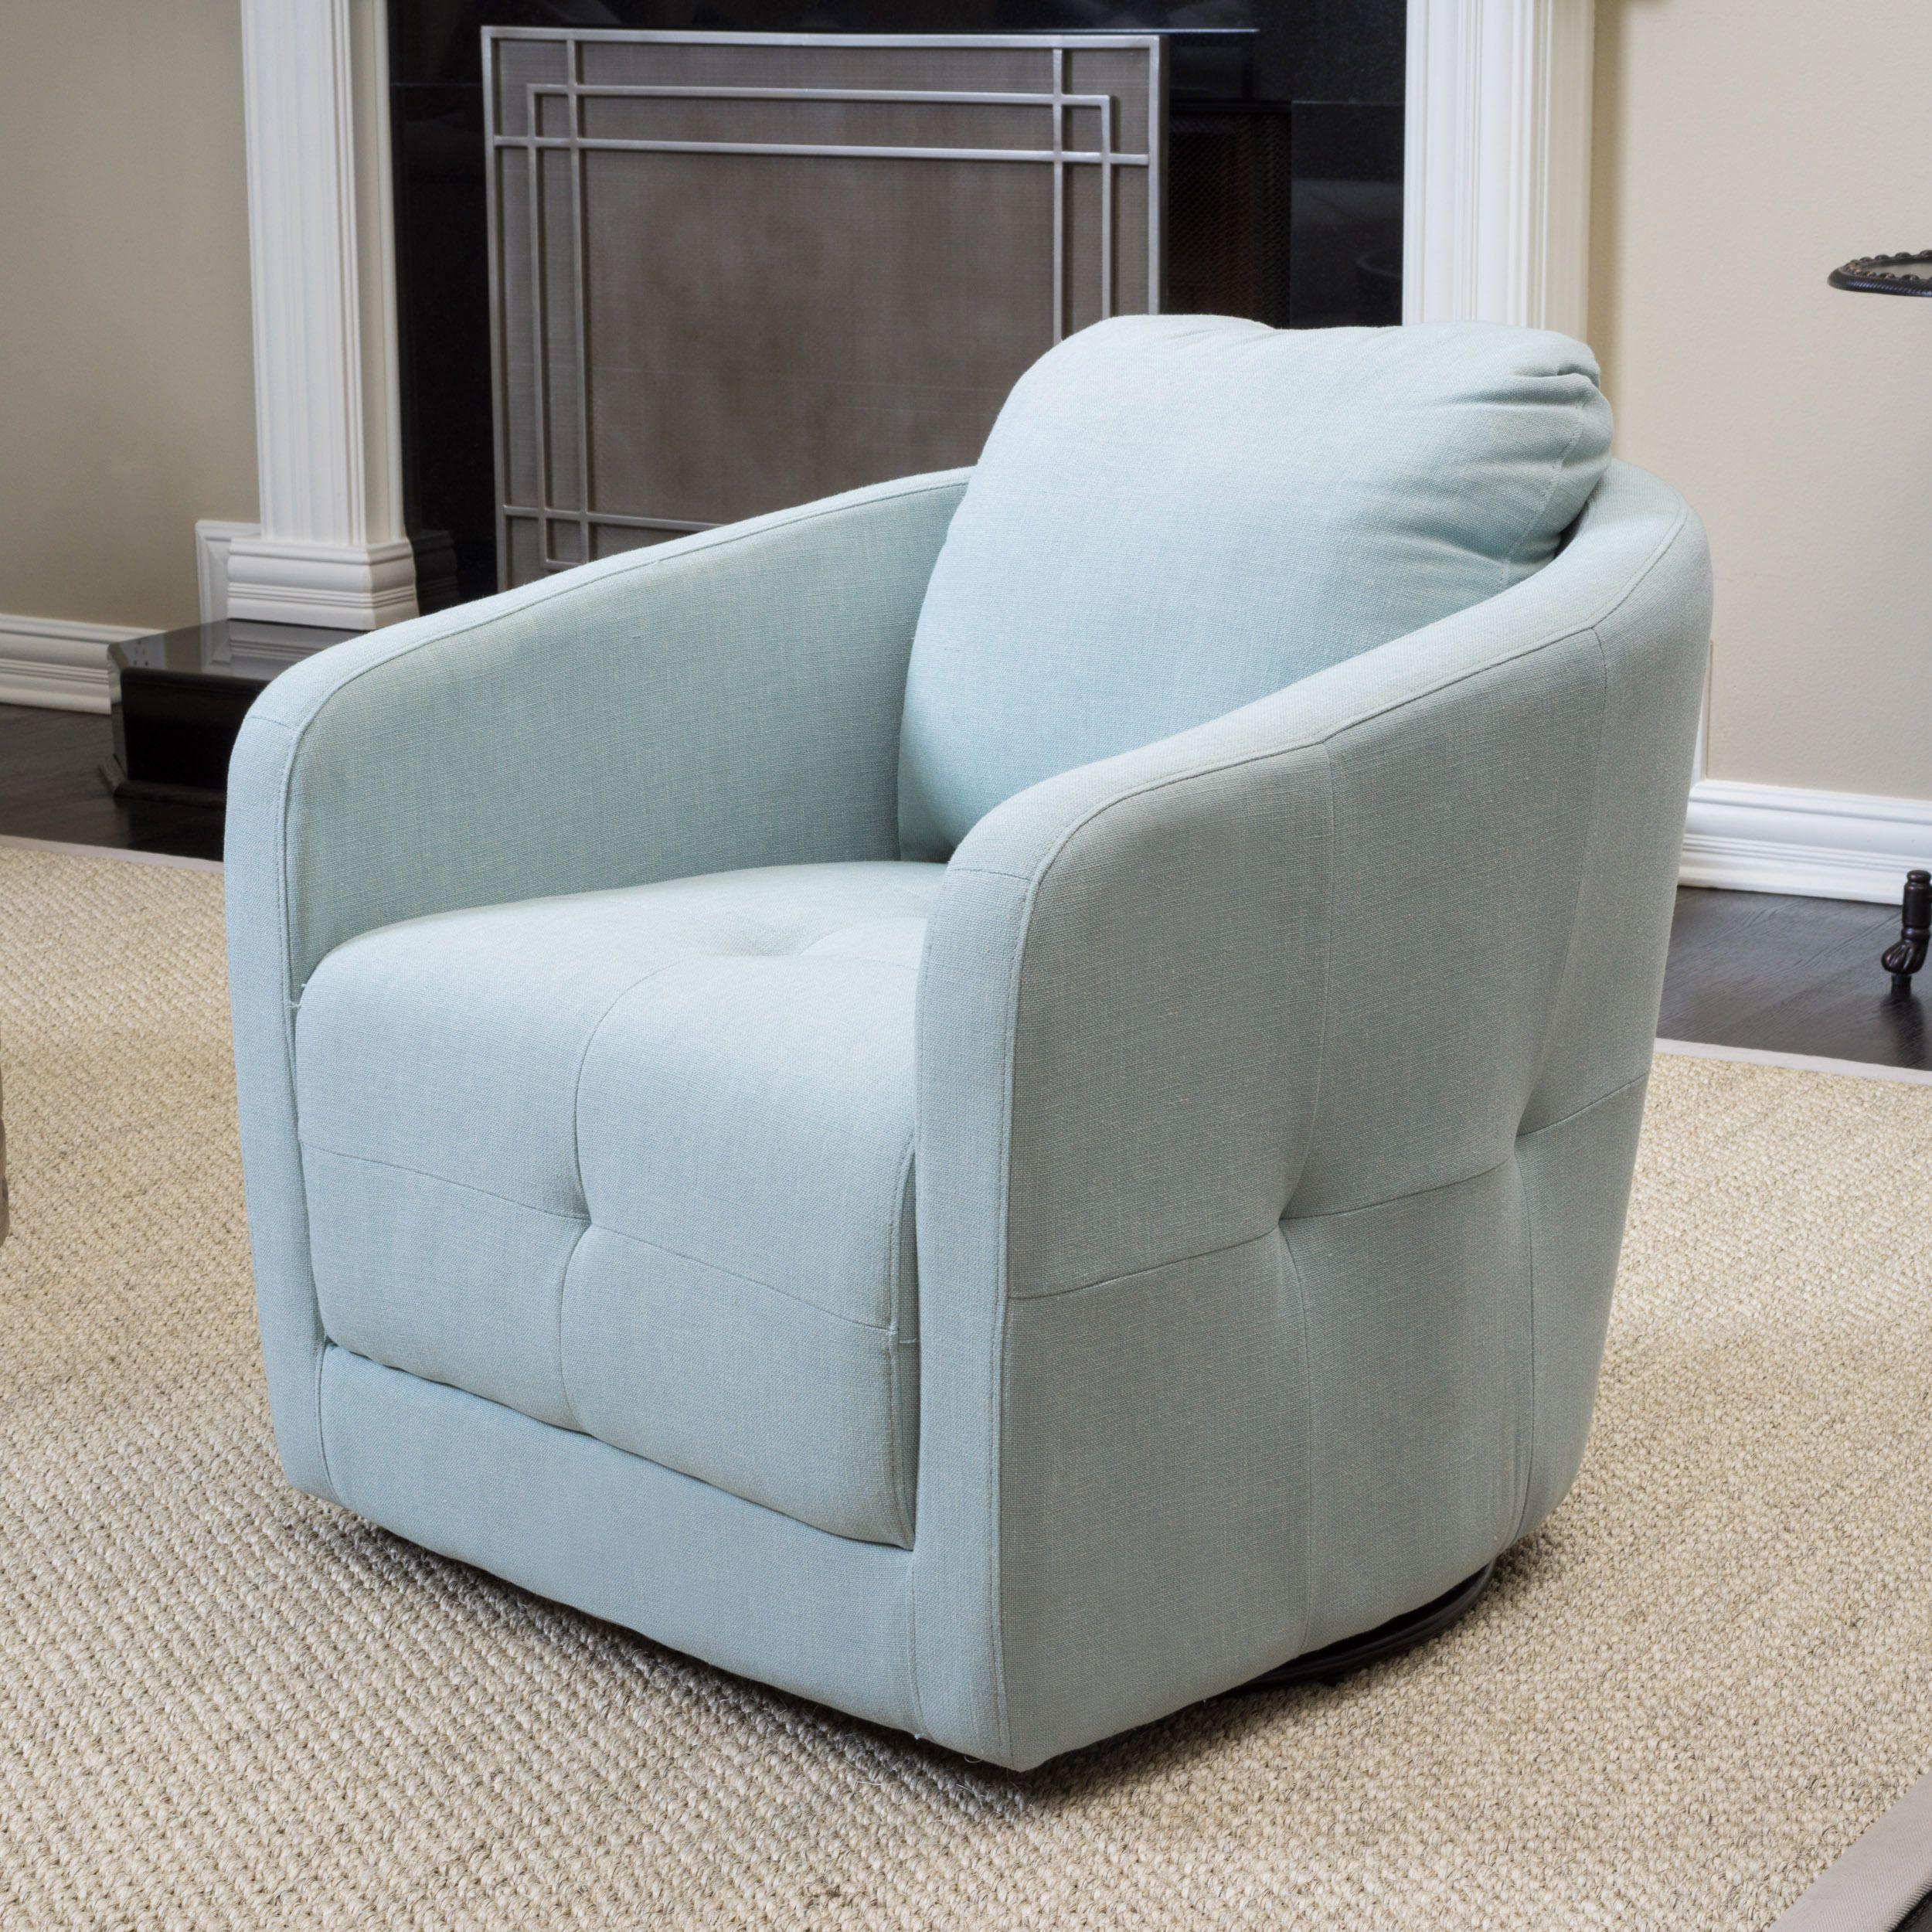 Christopher Knight Home Concordia Fabric Swivel Chair 楊